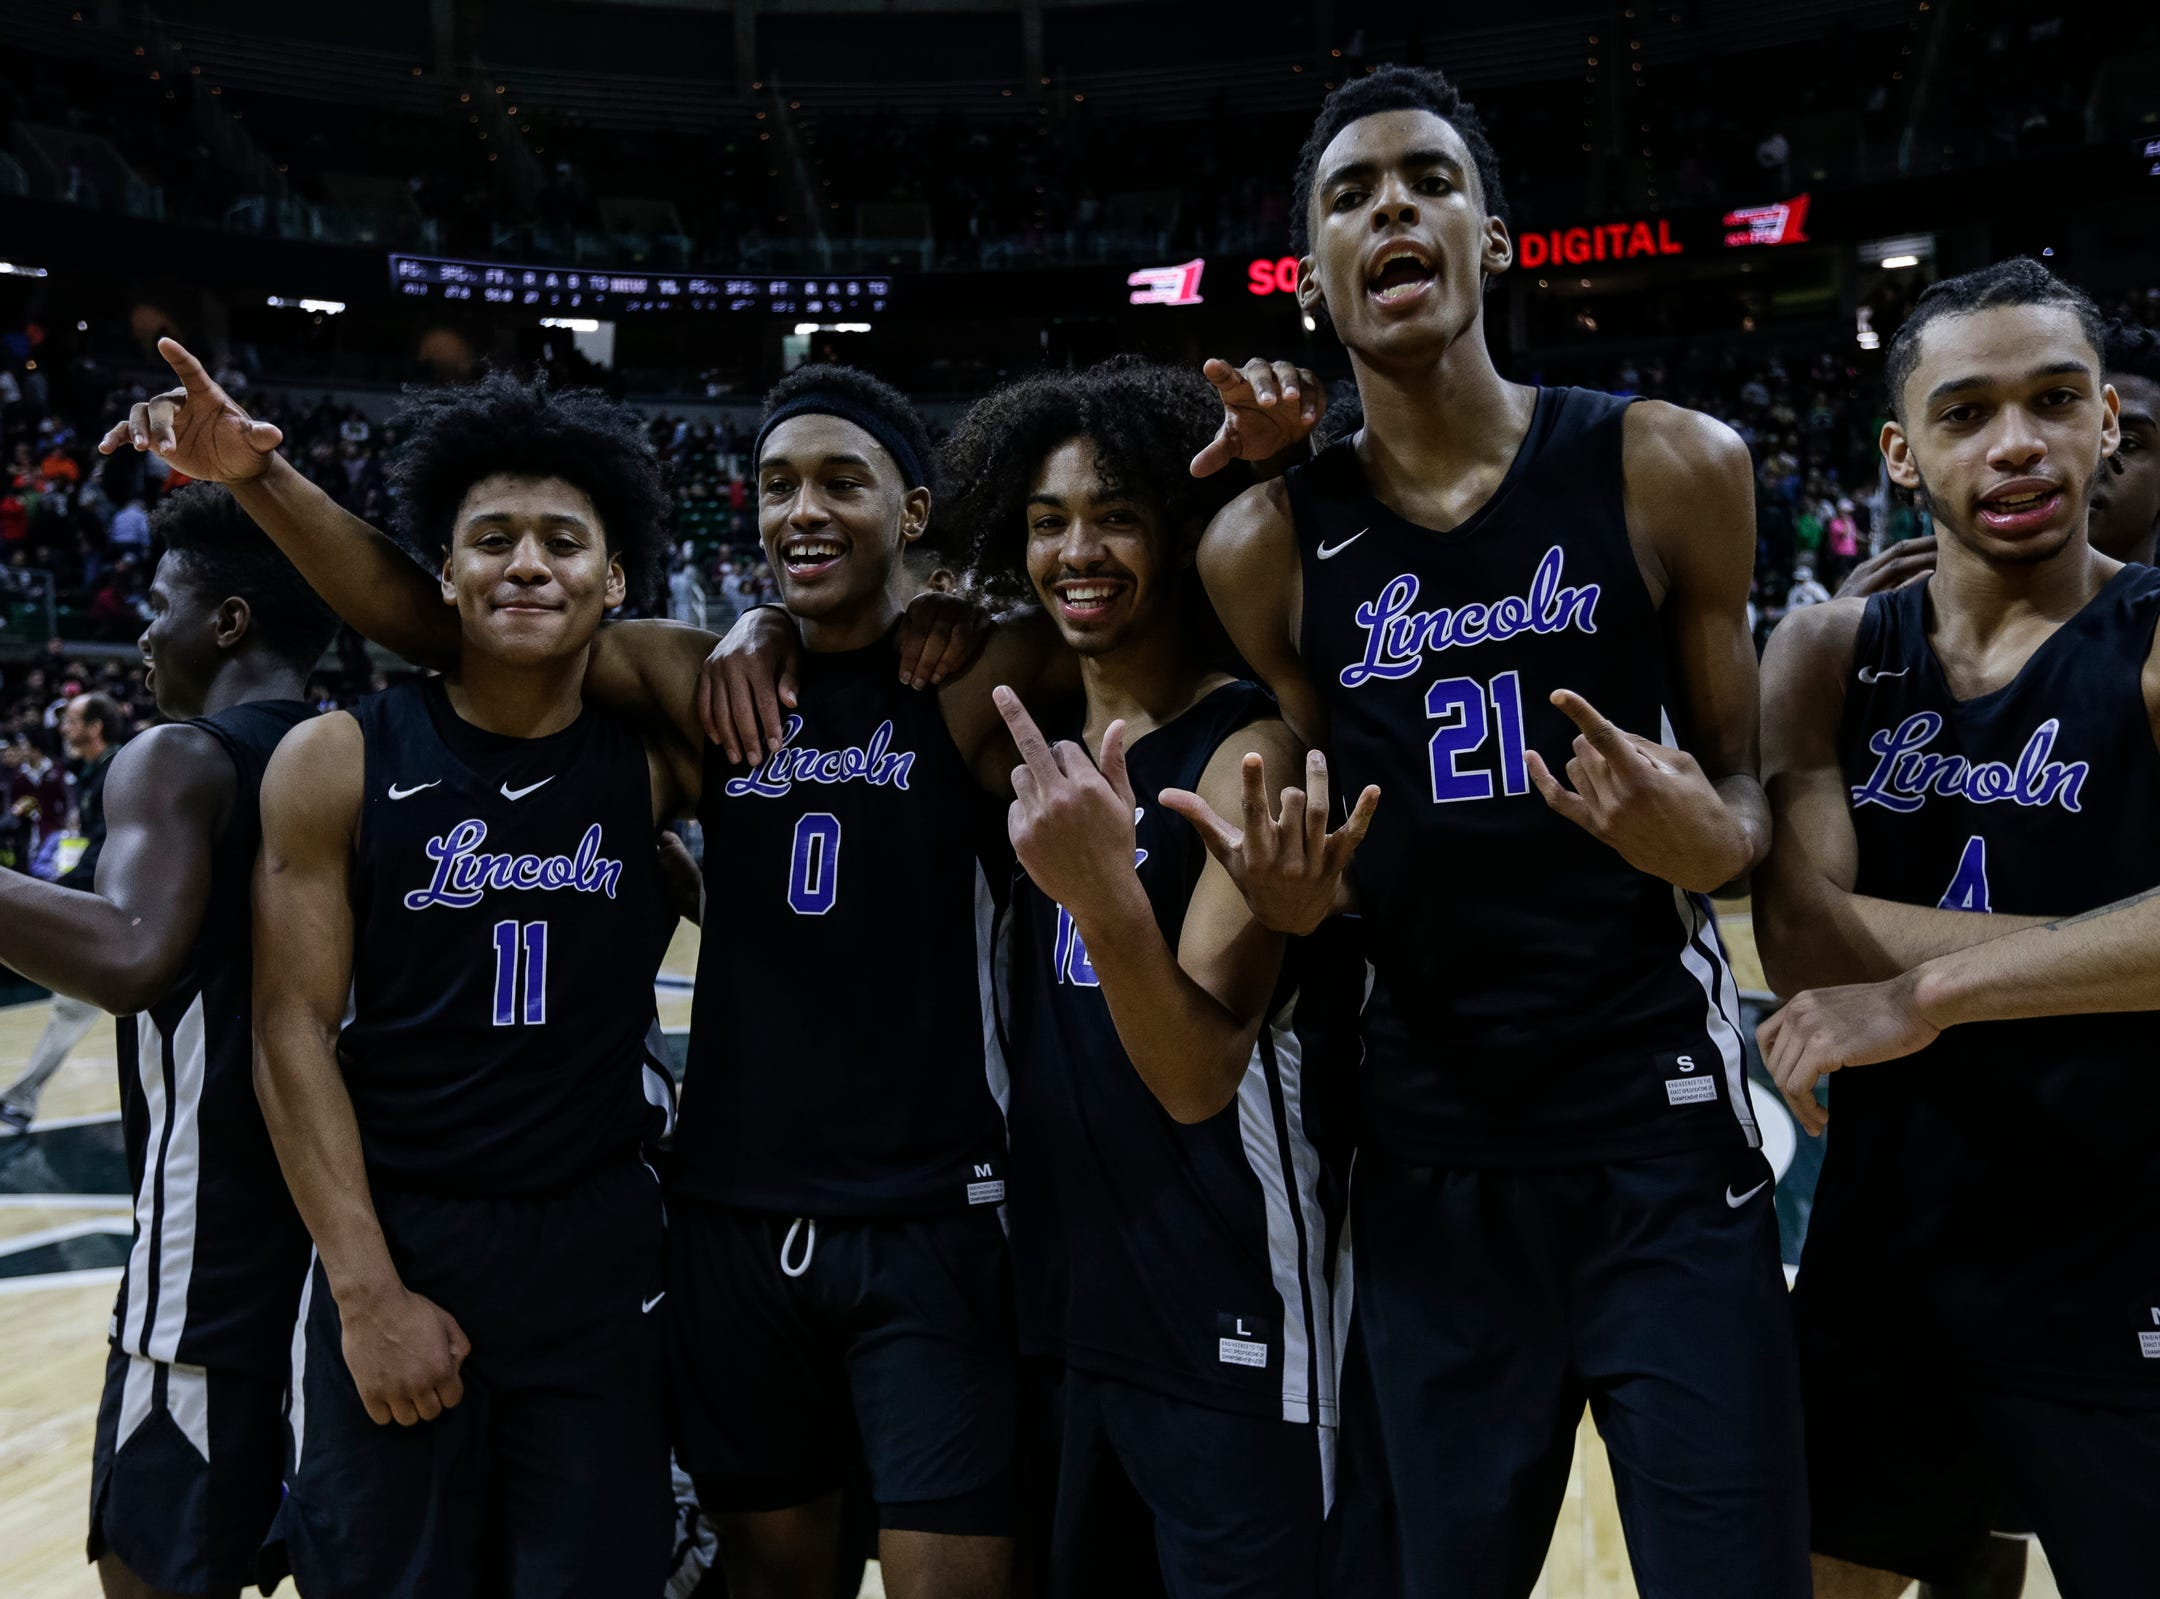 Ypsilanti Lincoln players celebrate after the Railsplitters won 72-56 over Howell at MHSAA Division 1 semifinal at the Breslin Center in East Lansing, Friday, March 15, 2019.